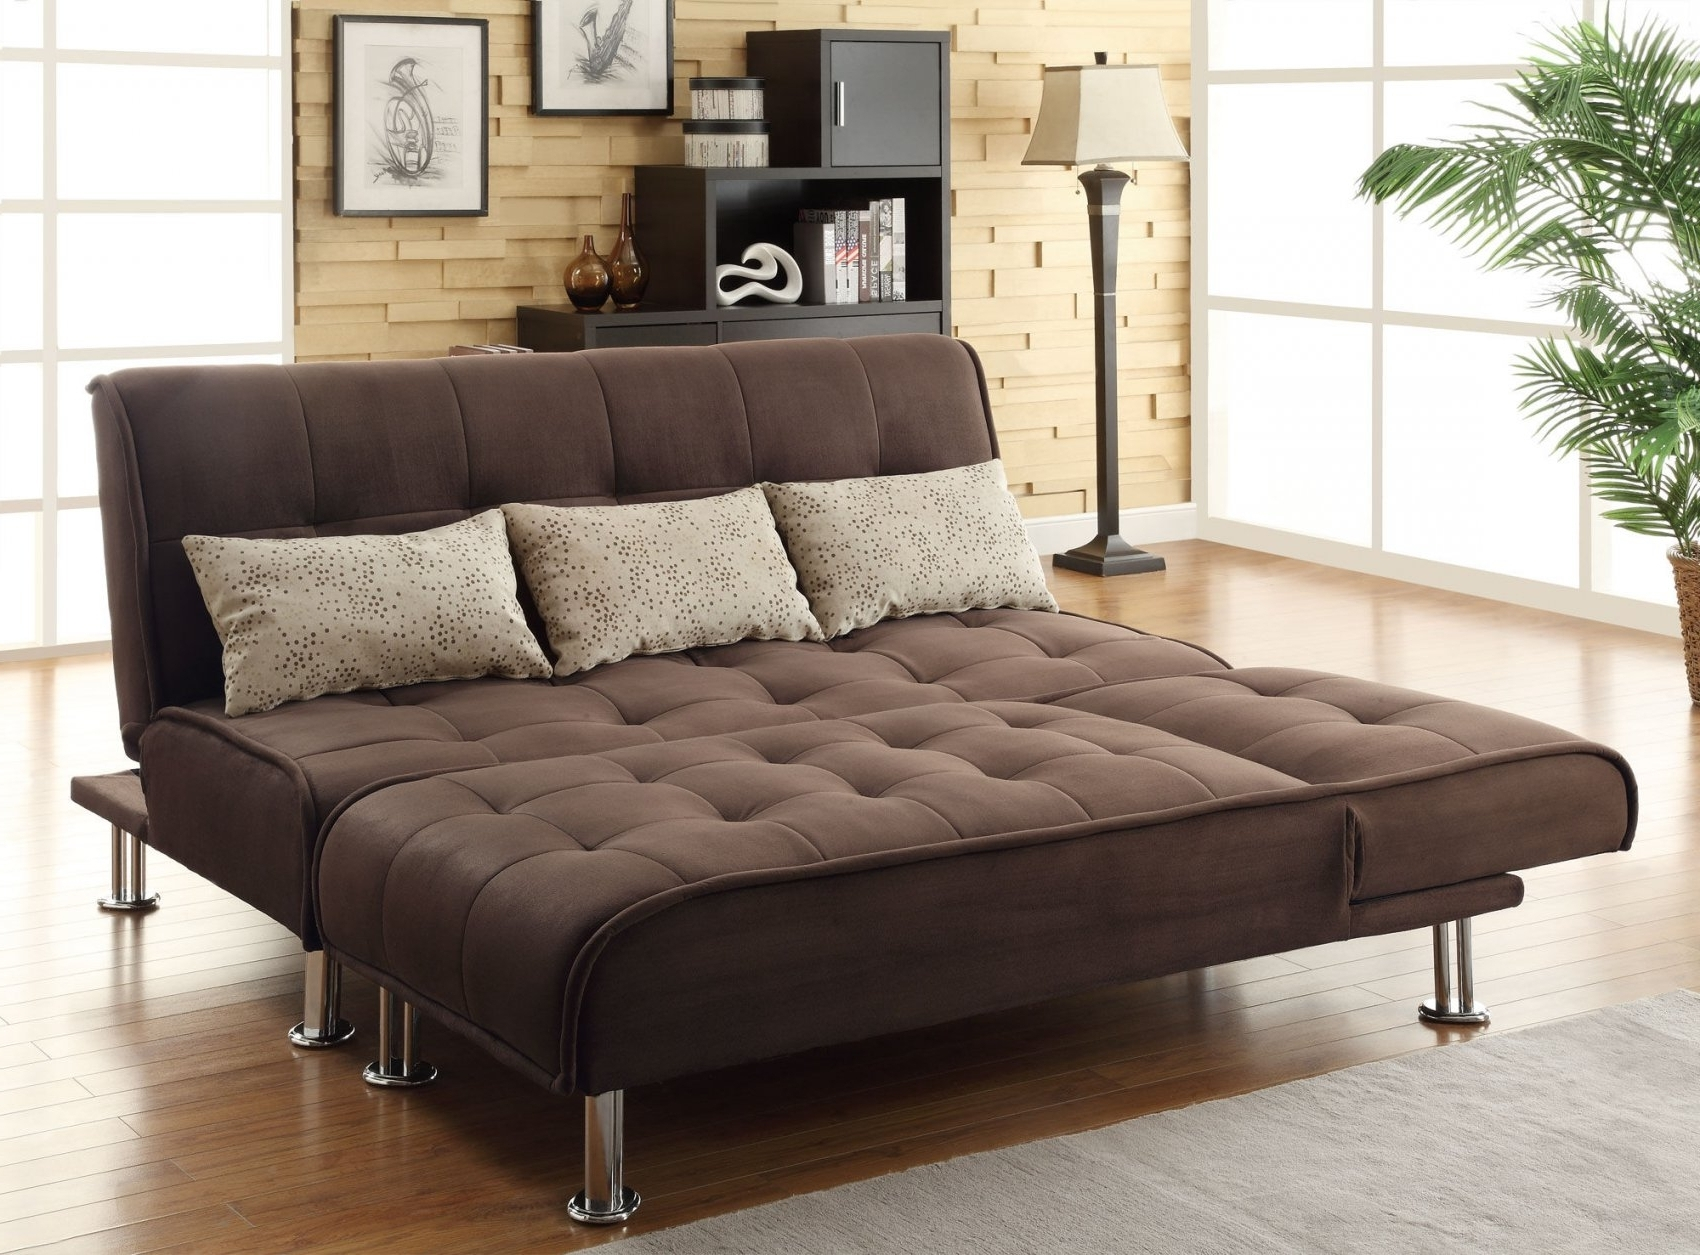 Queen Size Convertible Sofa Bed 46 About Remodel Pepperfry Regarding Latest Queen Size Sofas (Gallery 4 of 15)